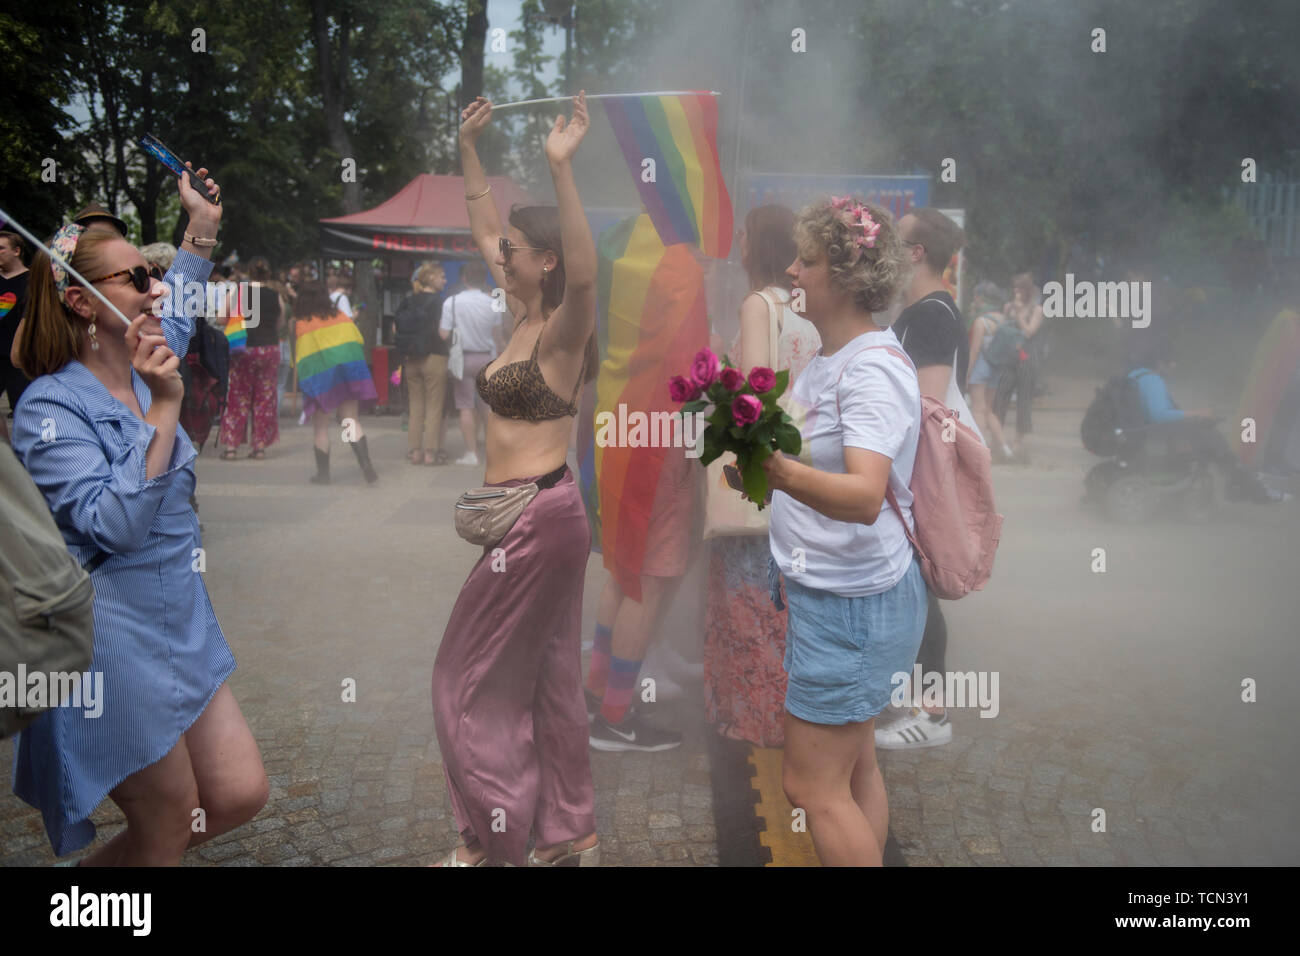 Warsaw, Poland. 08th June, 2019. People covered in smoke during the Warsaw Pride. The Equality March also called the Warsaw Pride parade, brought thousands of people to the streets of Warsaw, at the time when the gay rights movement in Poland is under siege by hate speech and a government campaign depicting it as a threat to families and society. Credit: SOPA Images Limited/Alamy Live News Stock Photo